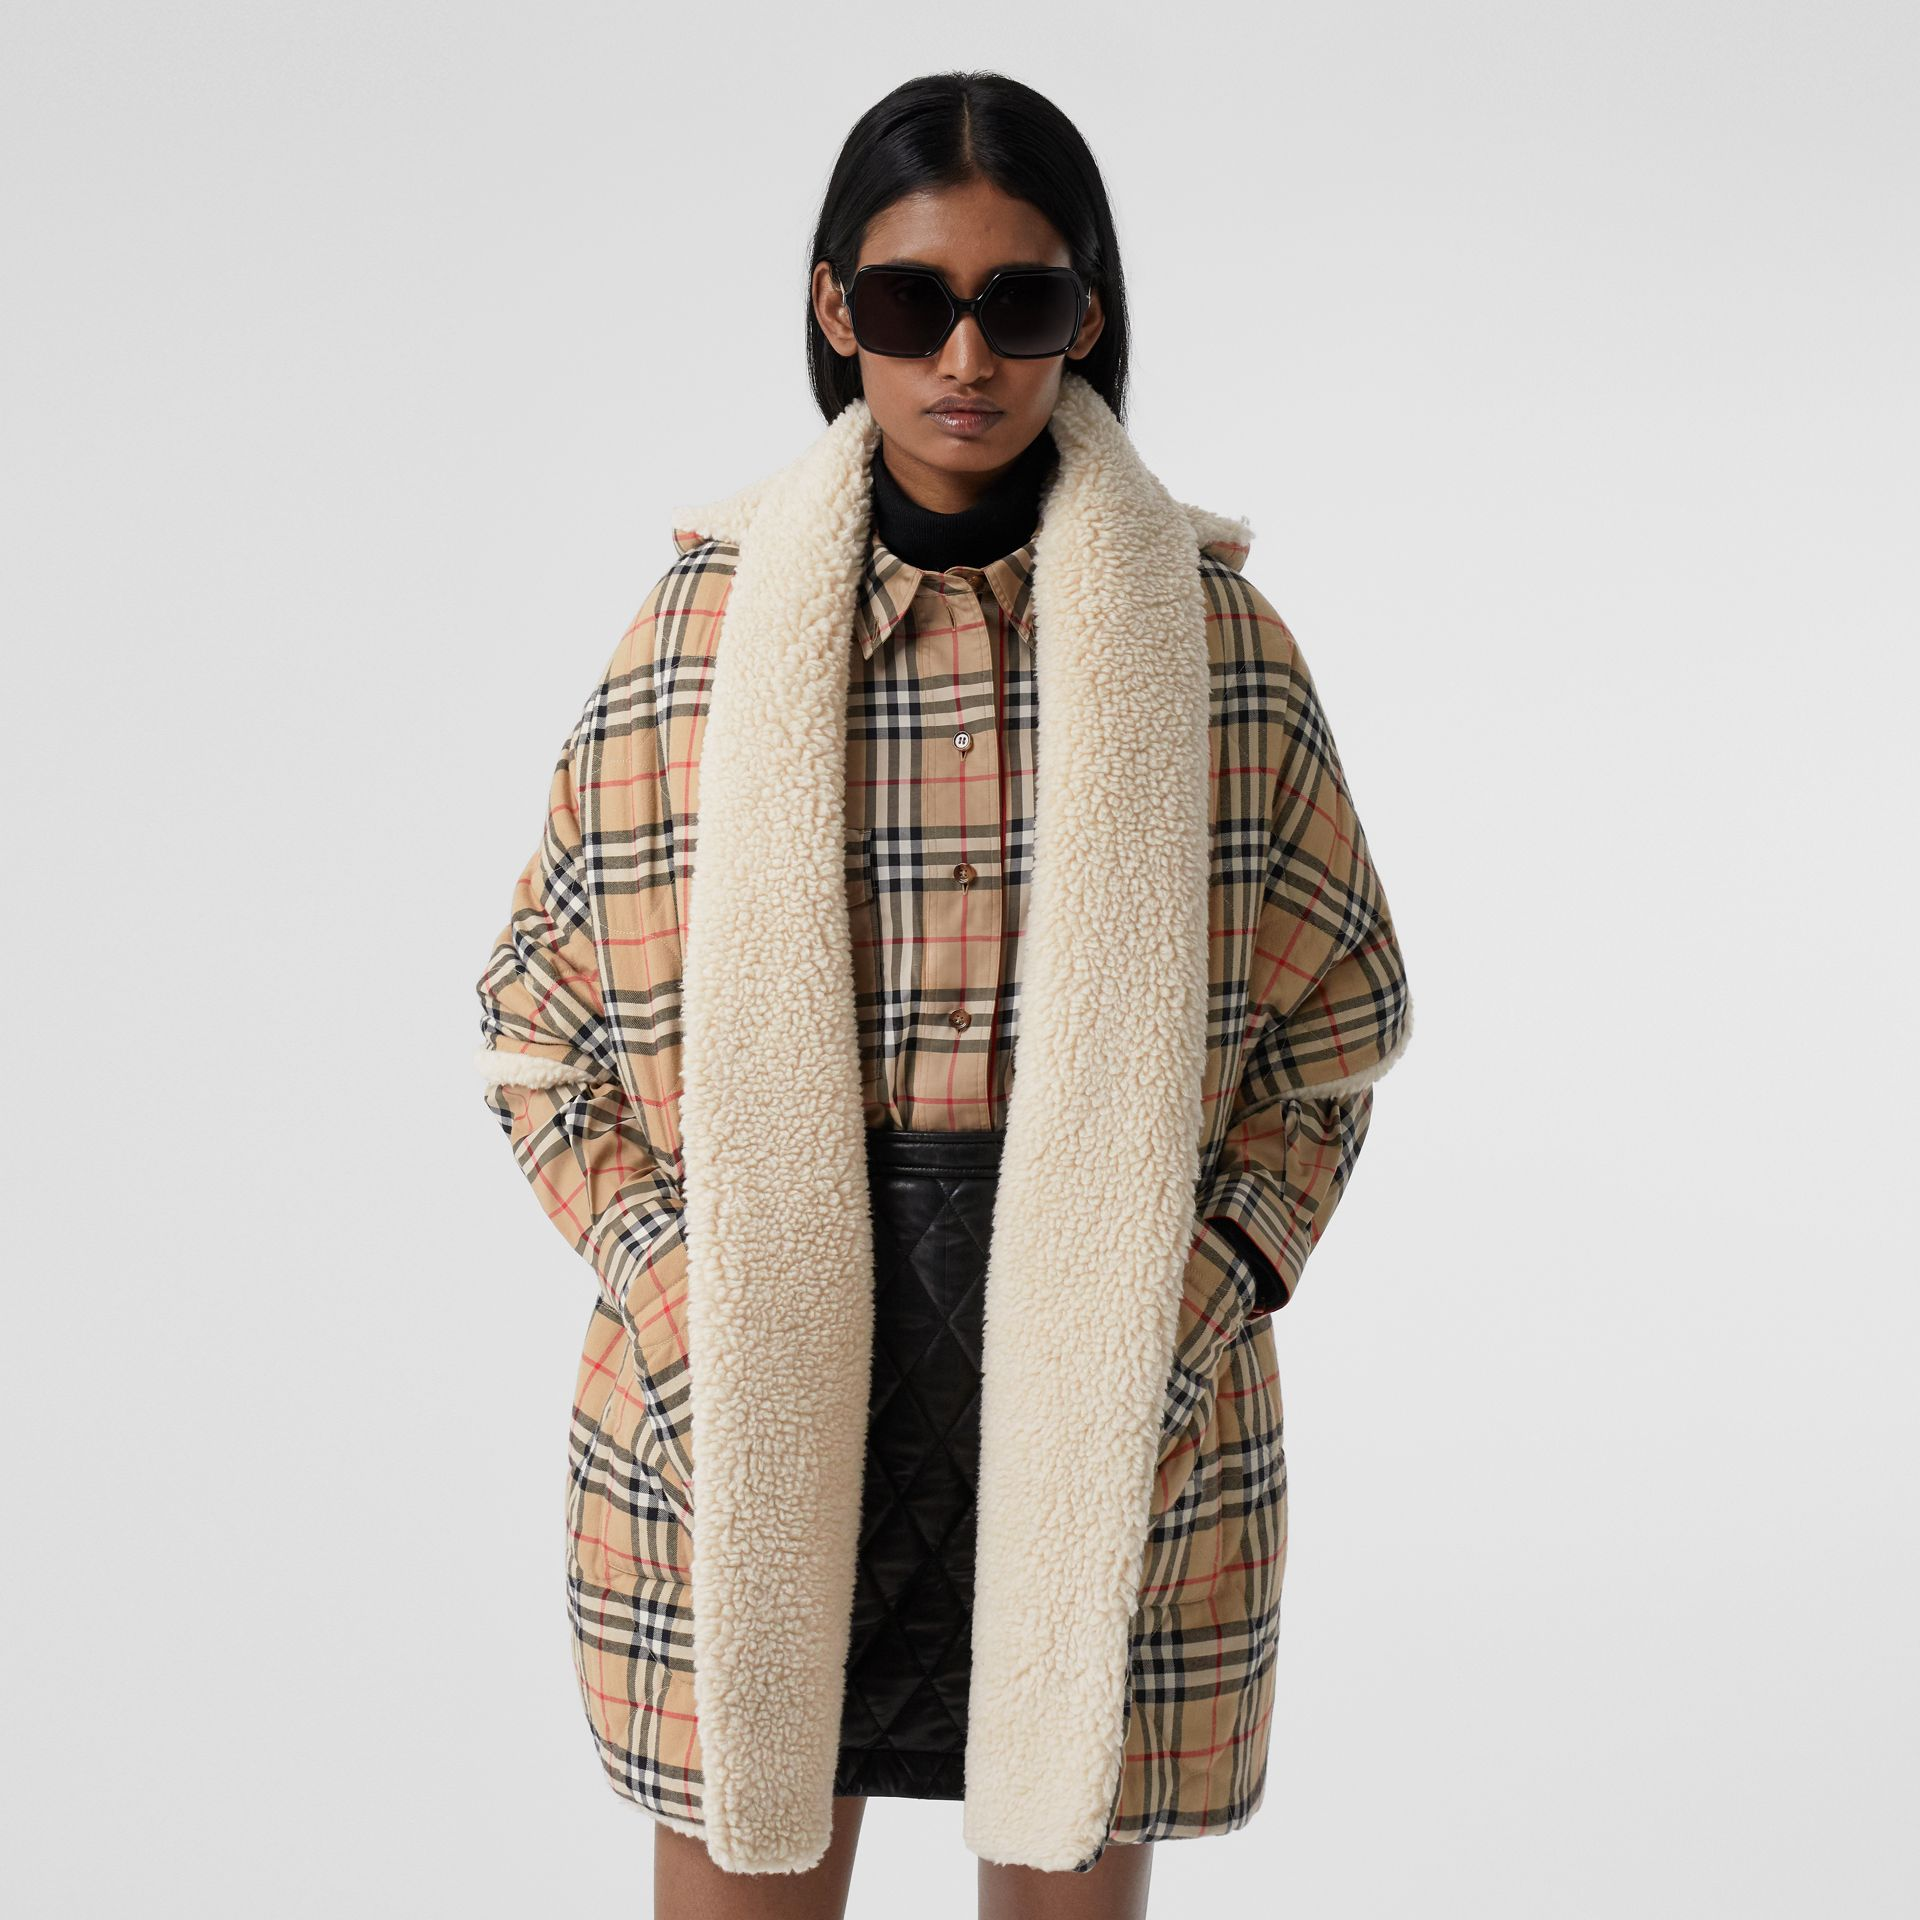 Fleece-lined Vintage Check Cotton Hooded Cape in Camel - Women | Burberry Canada - gallery image 4